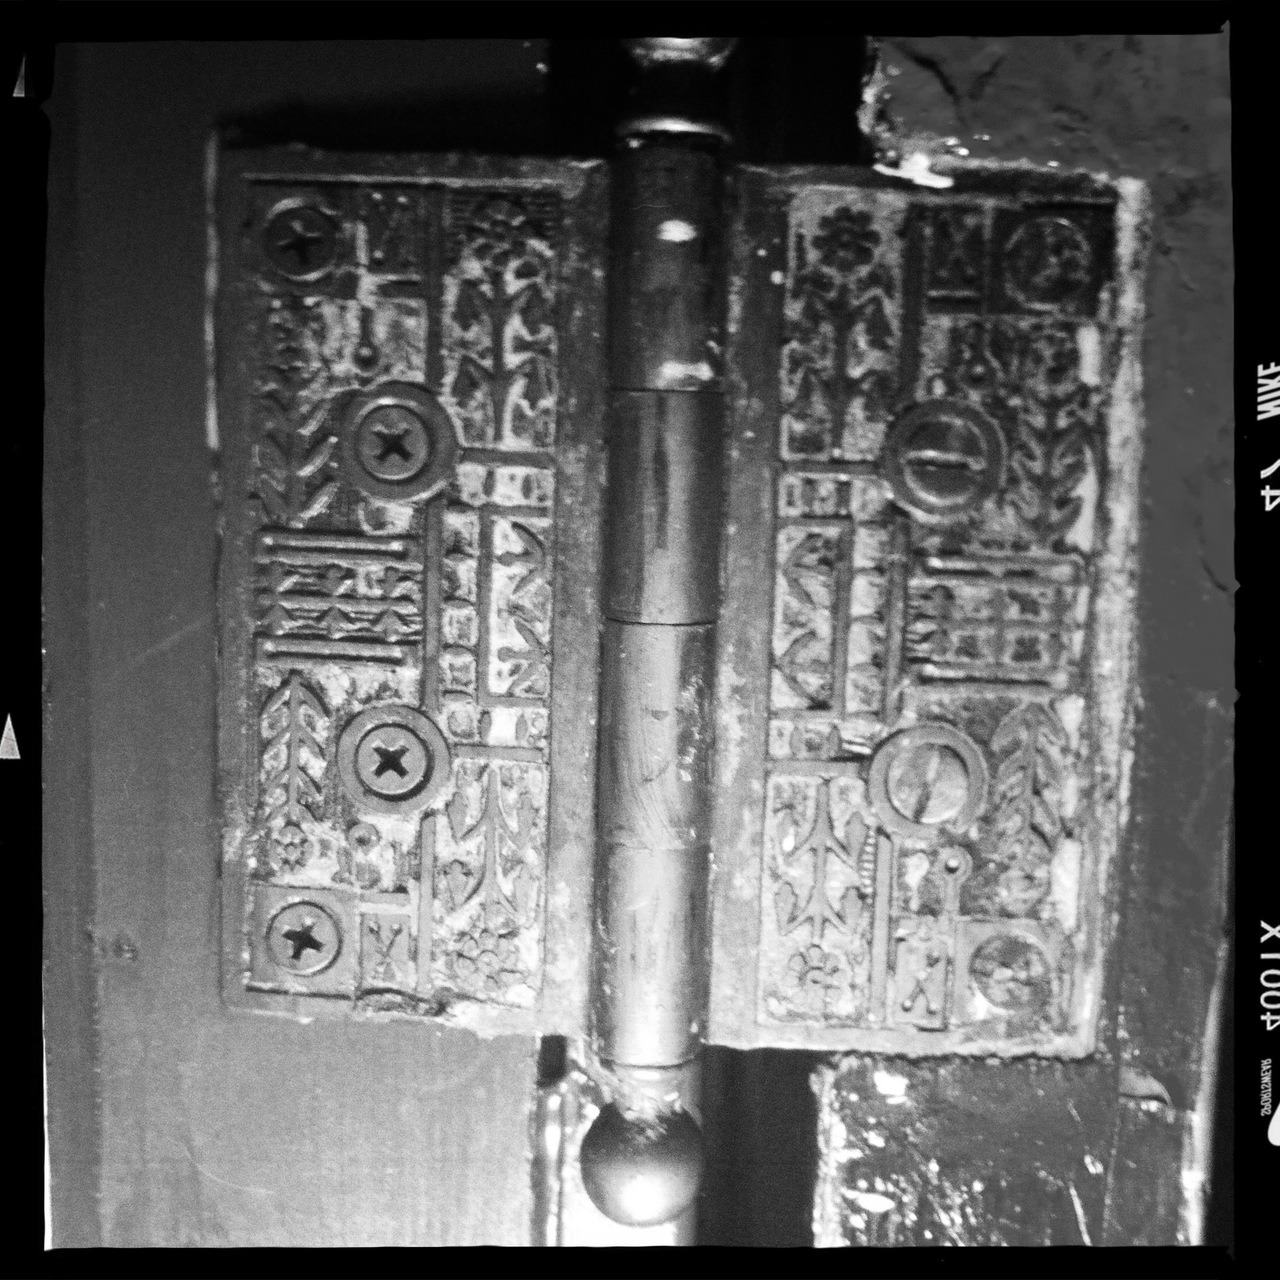 Even the hinges are beautiful on this 120-year-old door. Now that's a attention to detail.